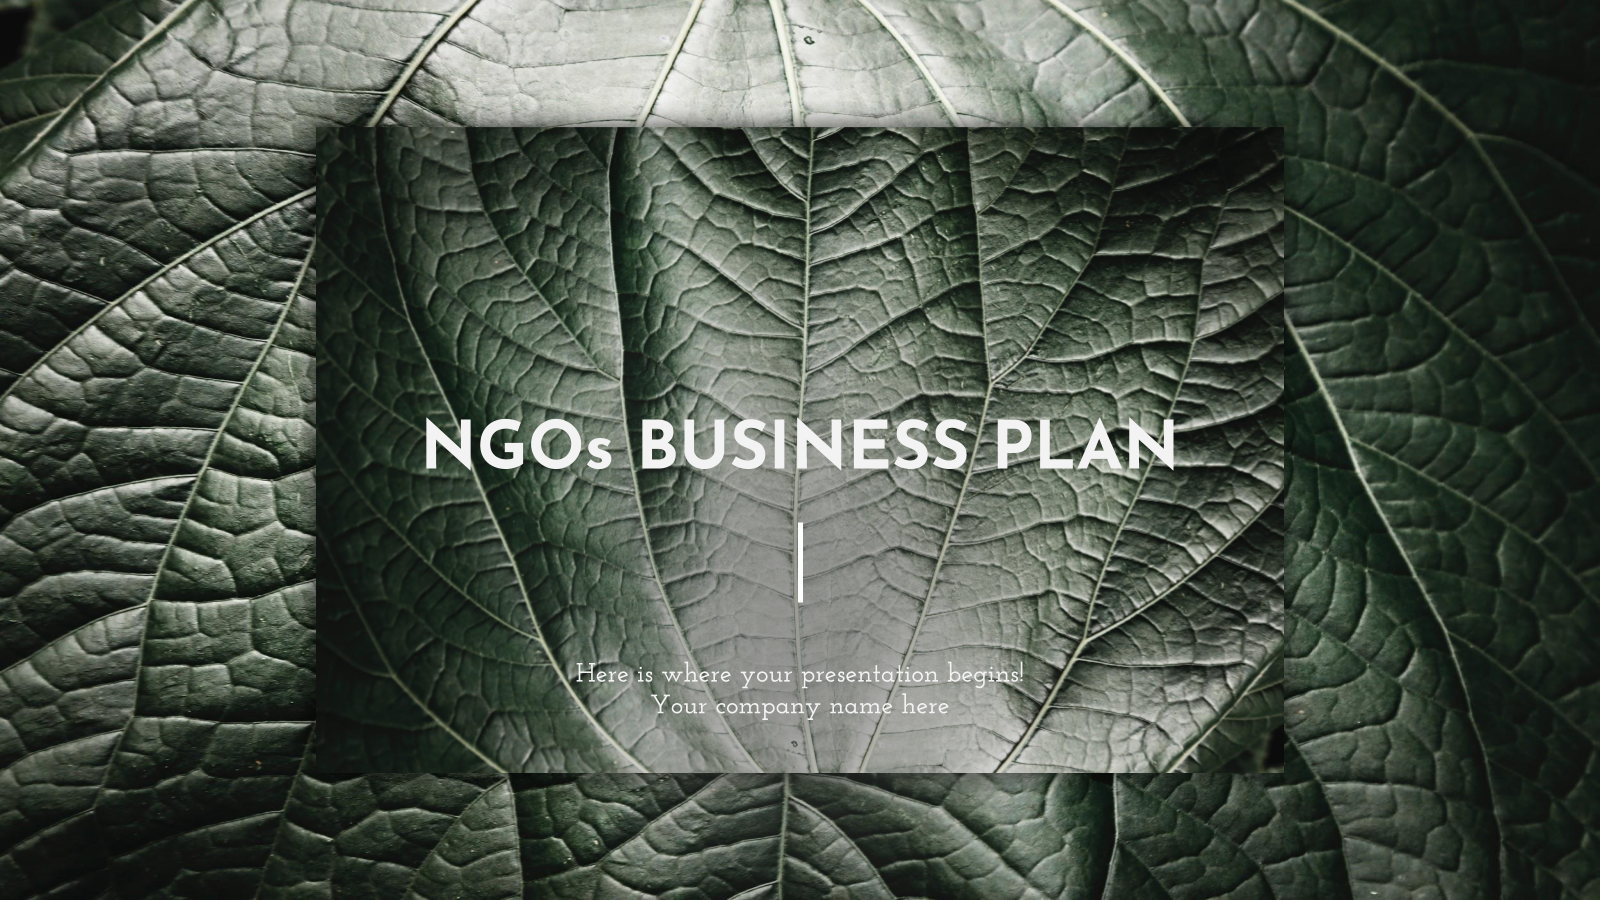 NGOs Business Plan presentation template